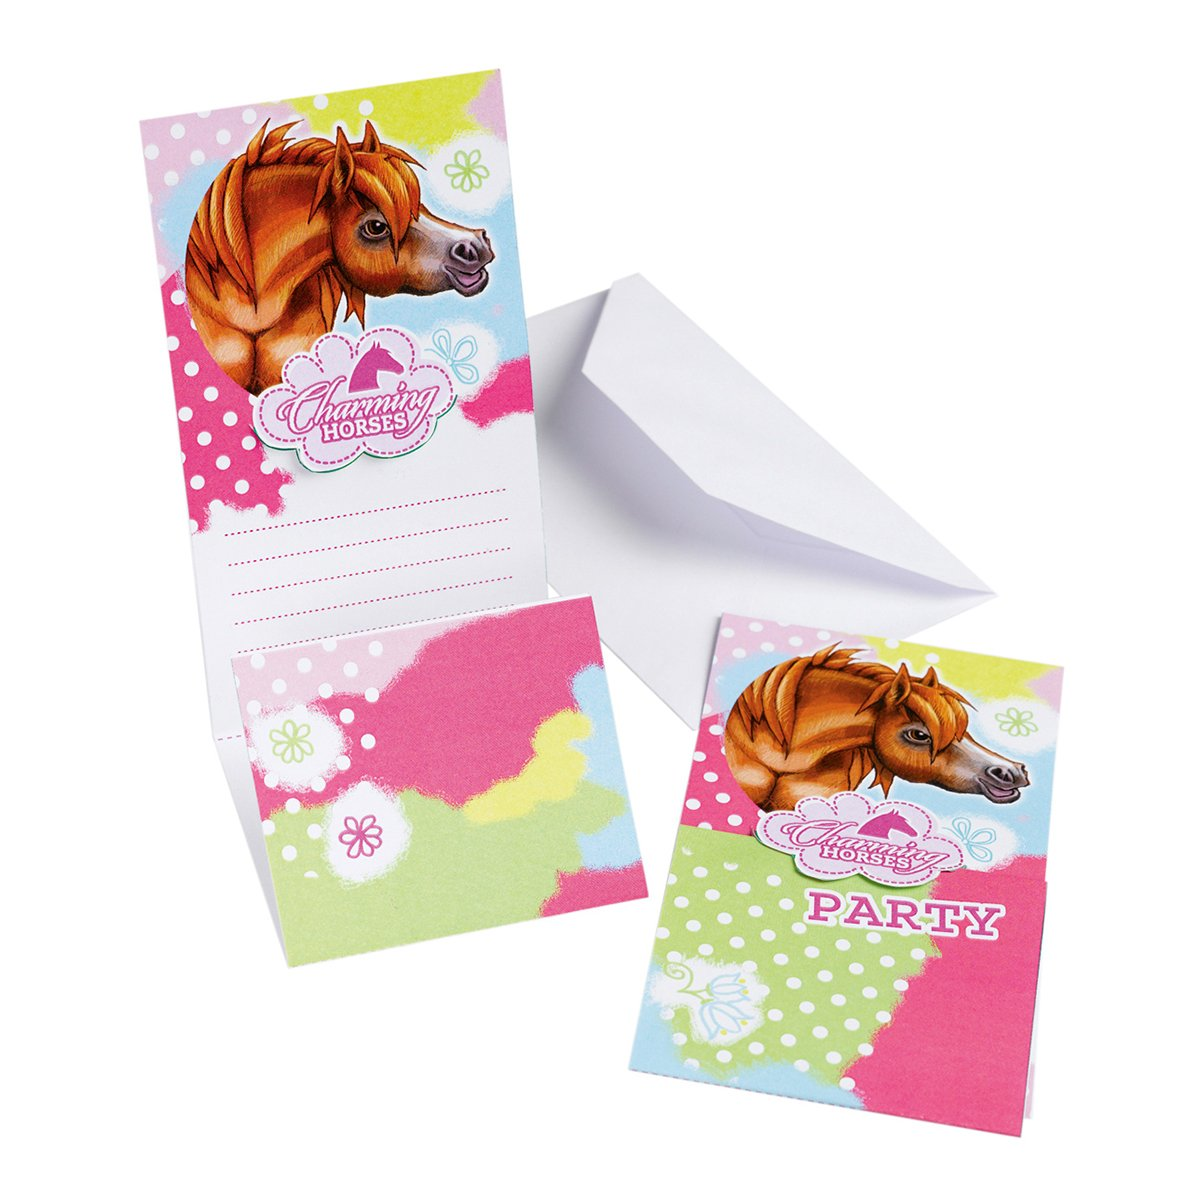 Amscan Charming Horses Invites and Envelopes Party Accessory